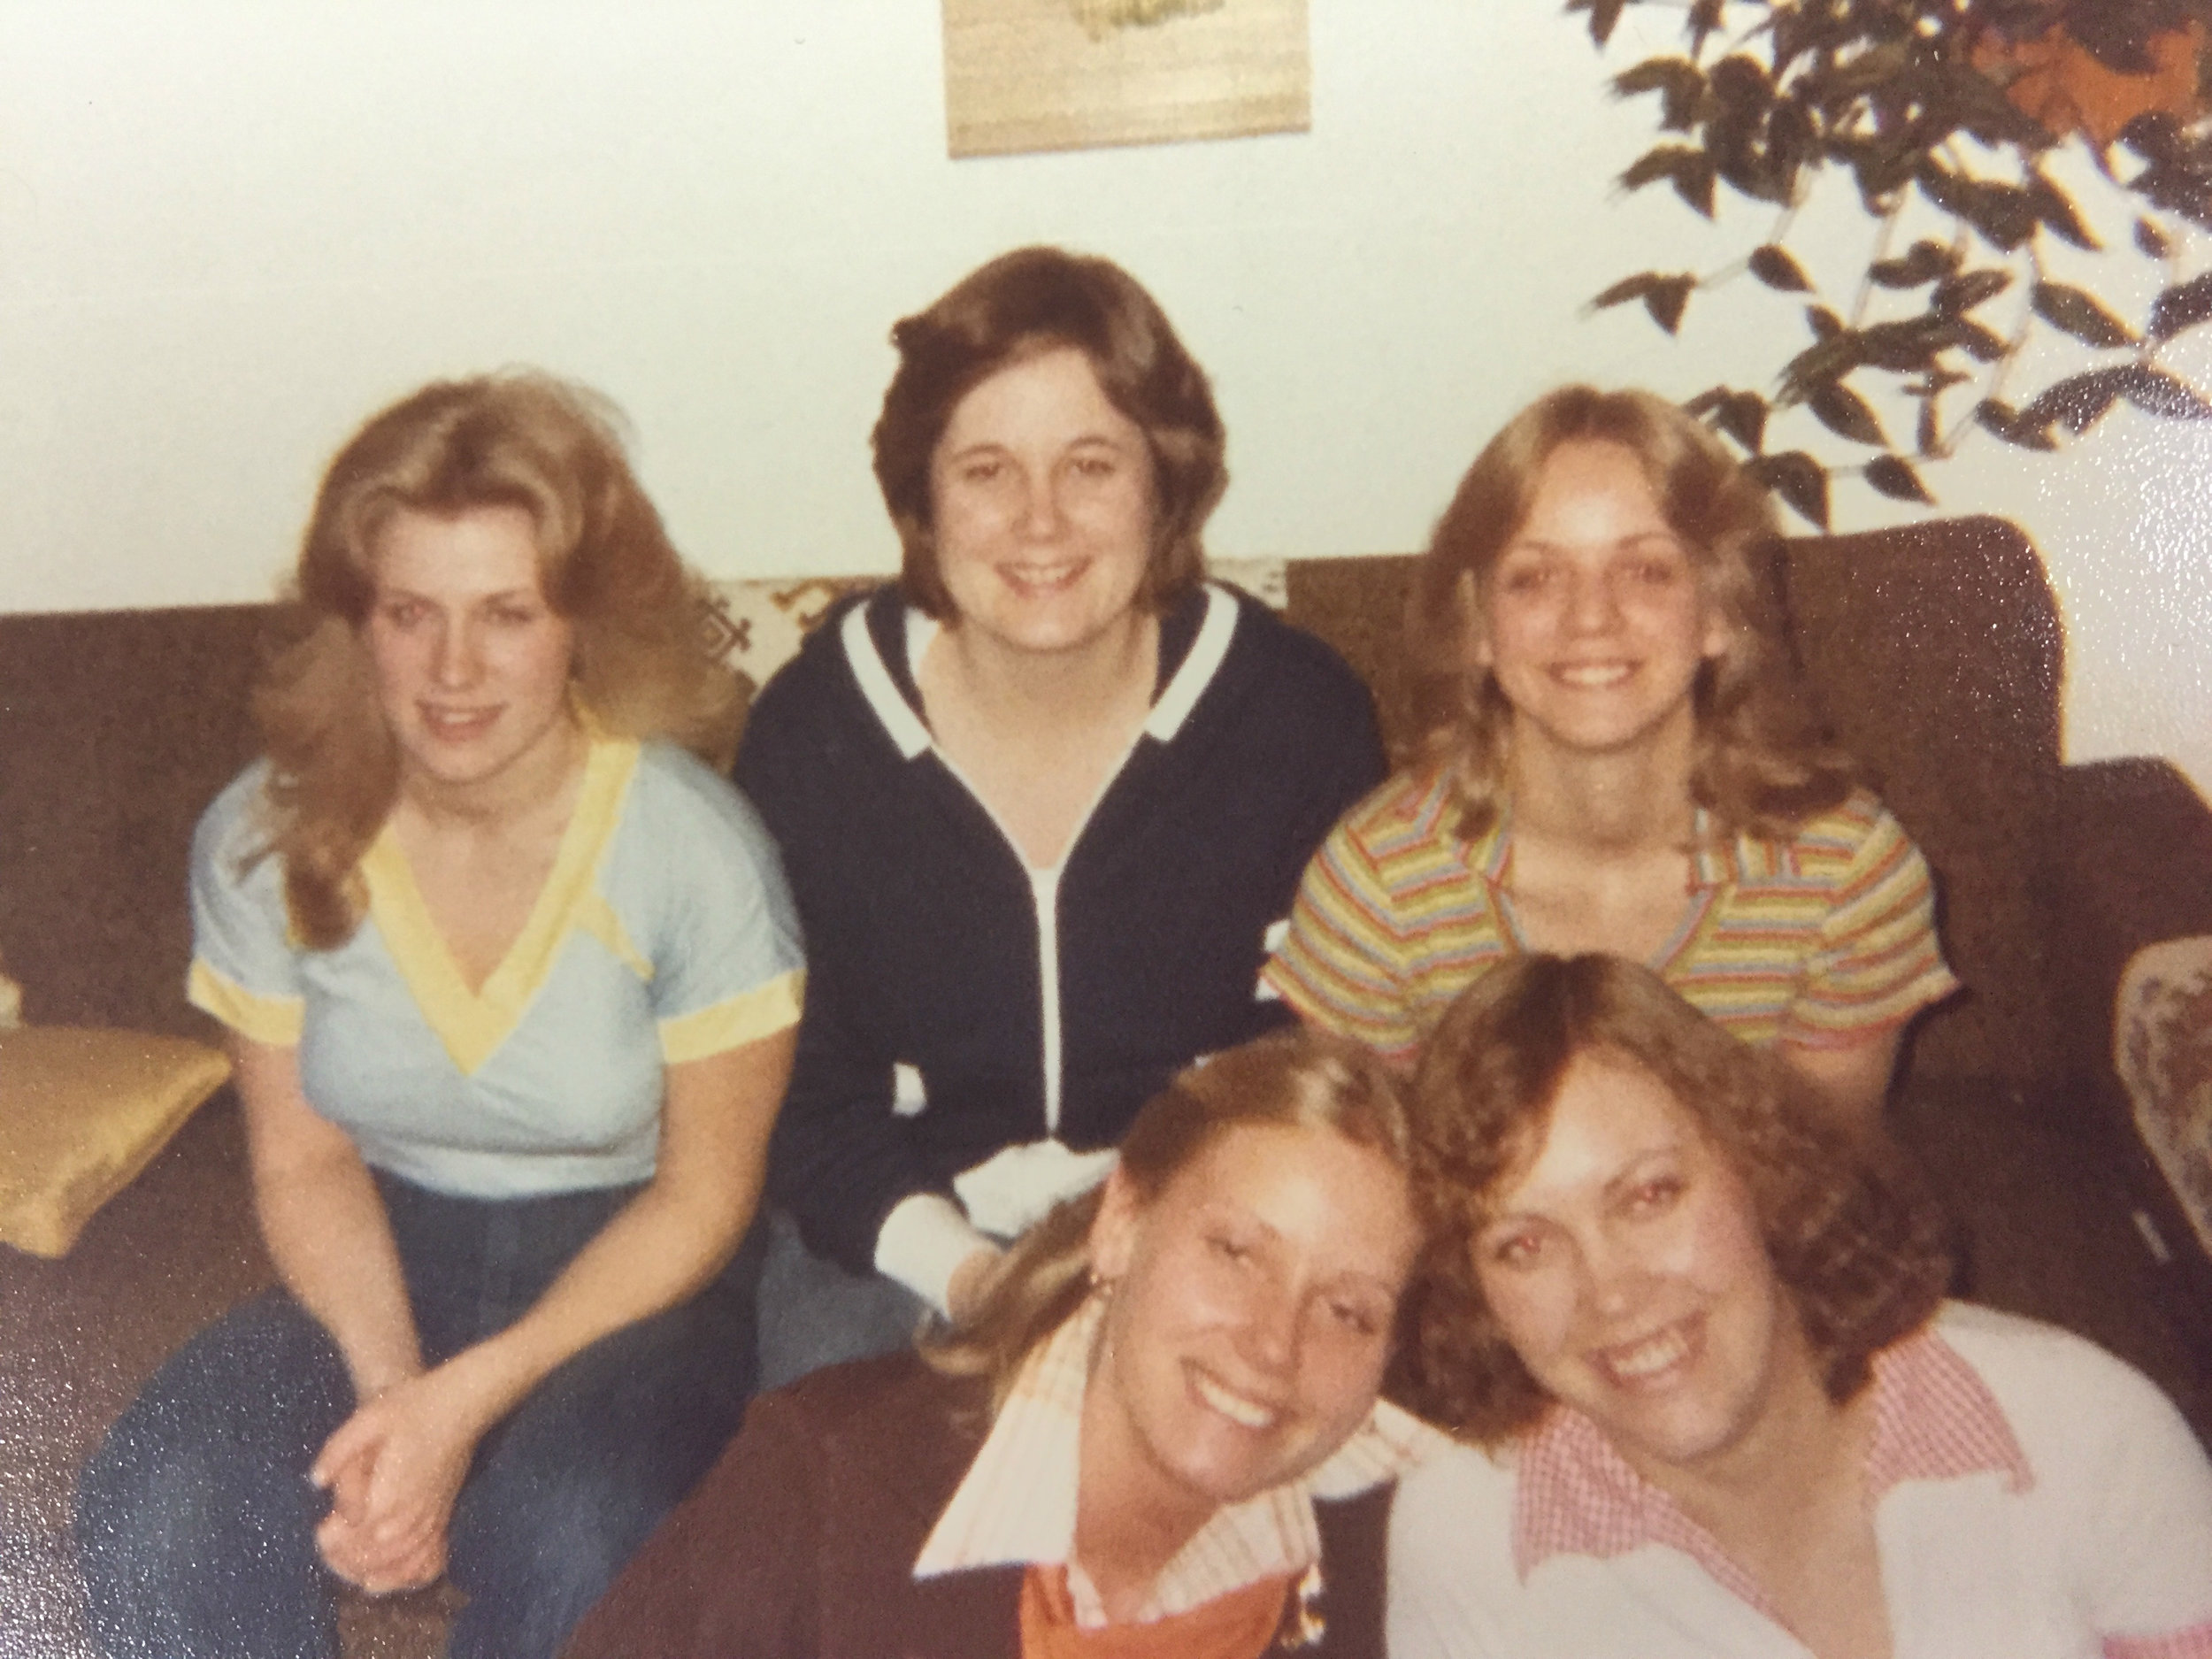 Cheryl, Cindy, Barb (back row), Sheila (a friend) and Gracia (a little chubby and a bad perm!)